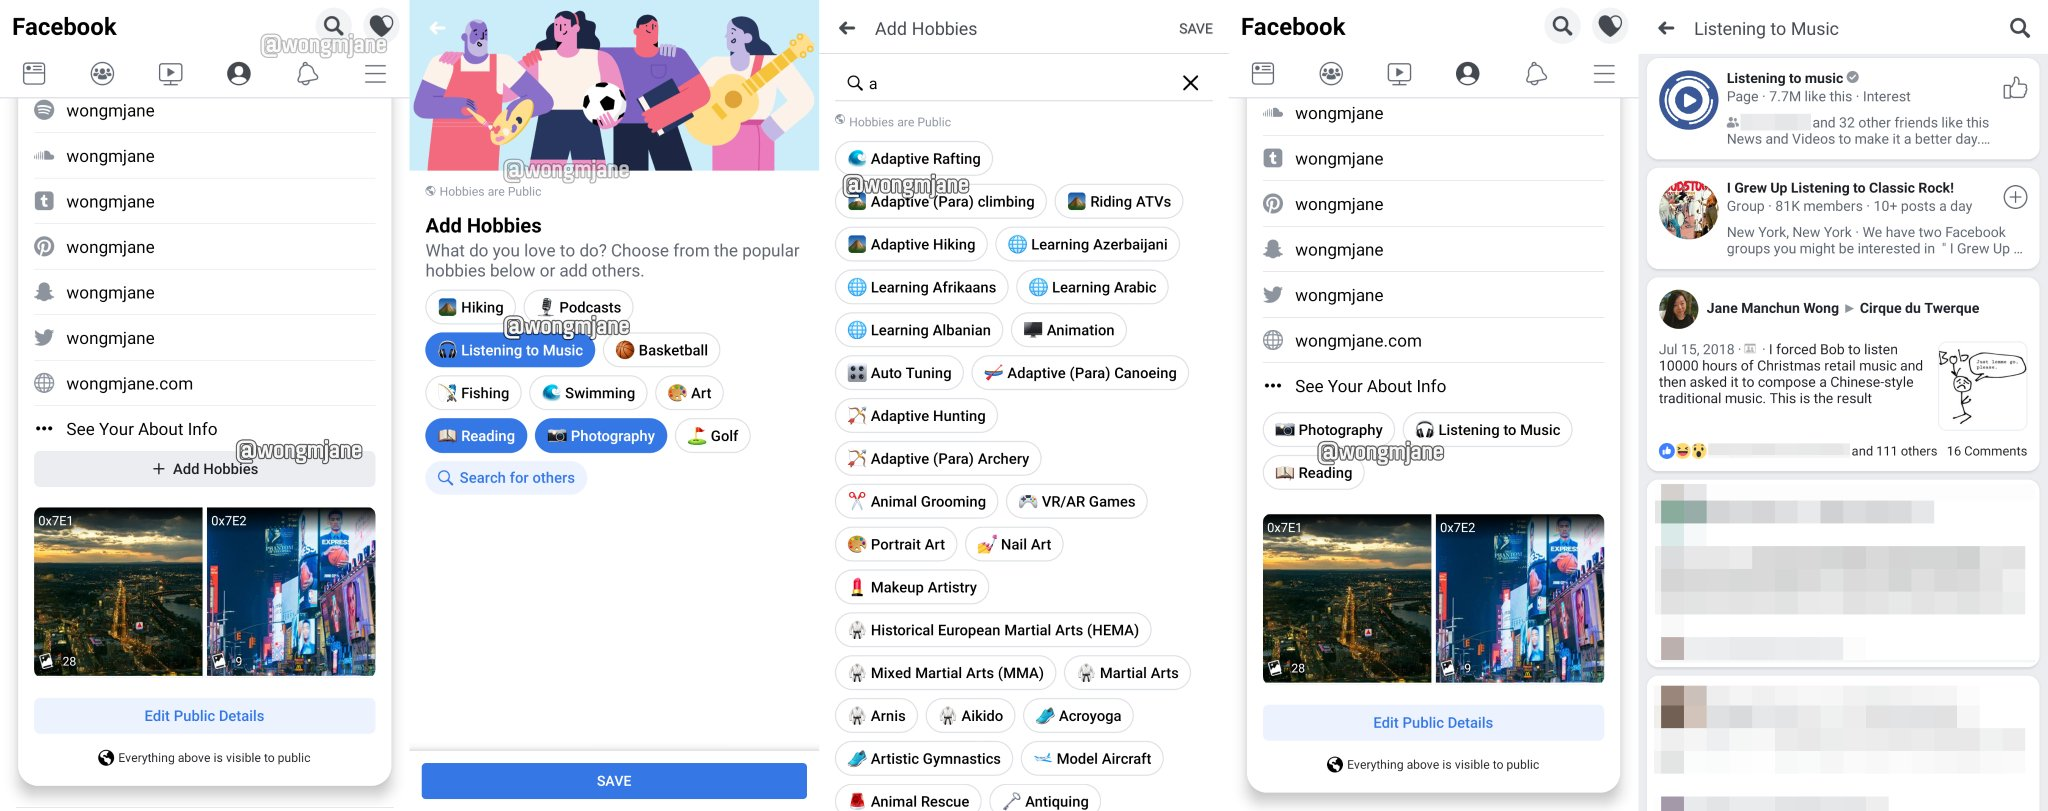 How to add new profile picture on facebook